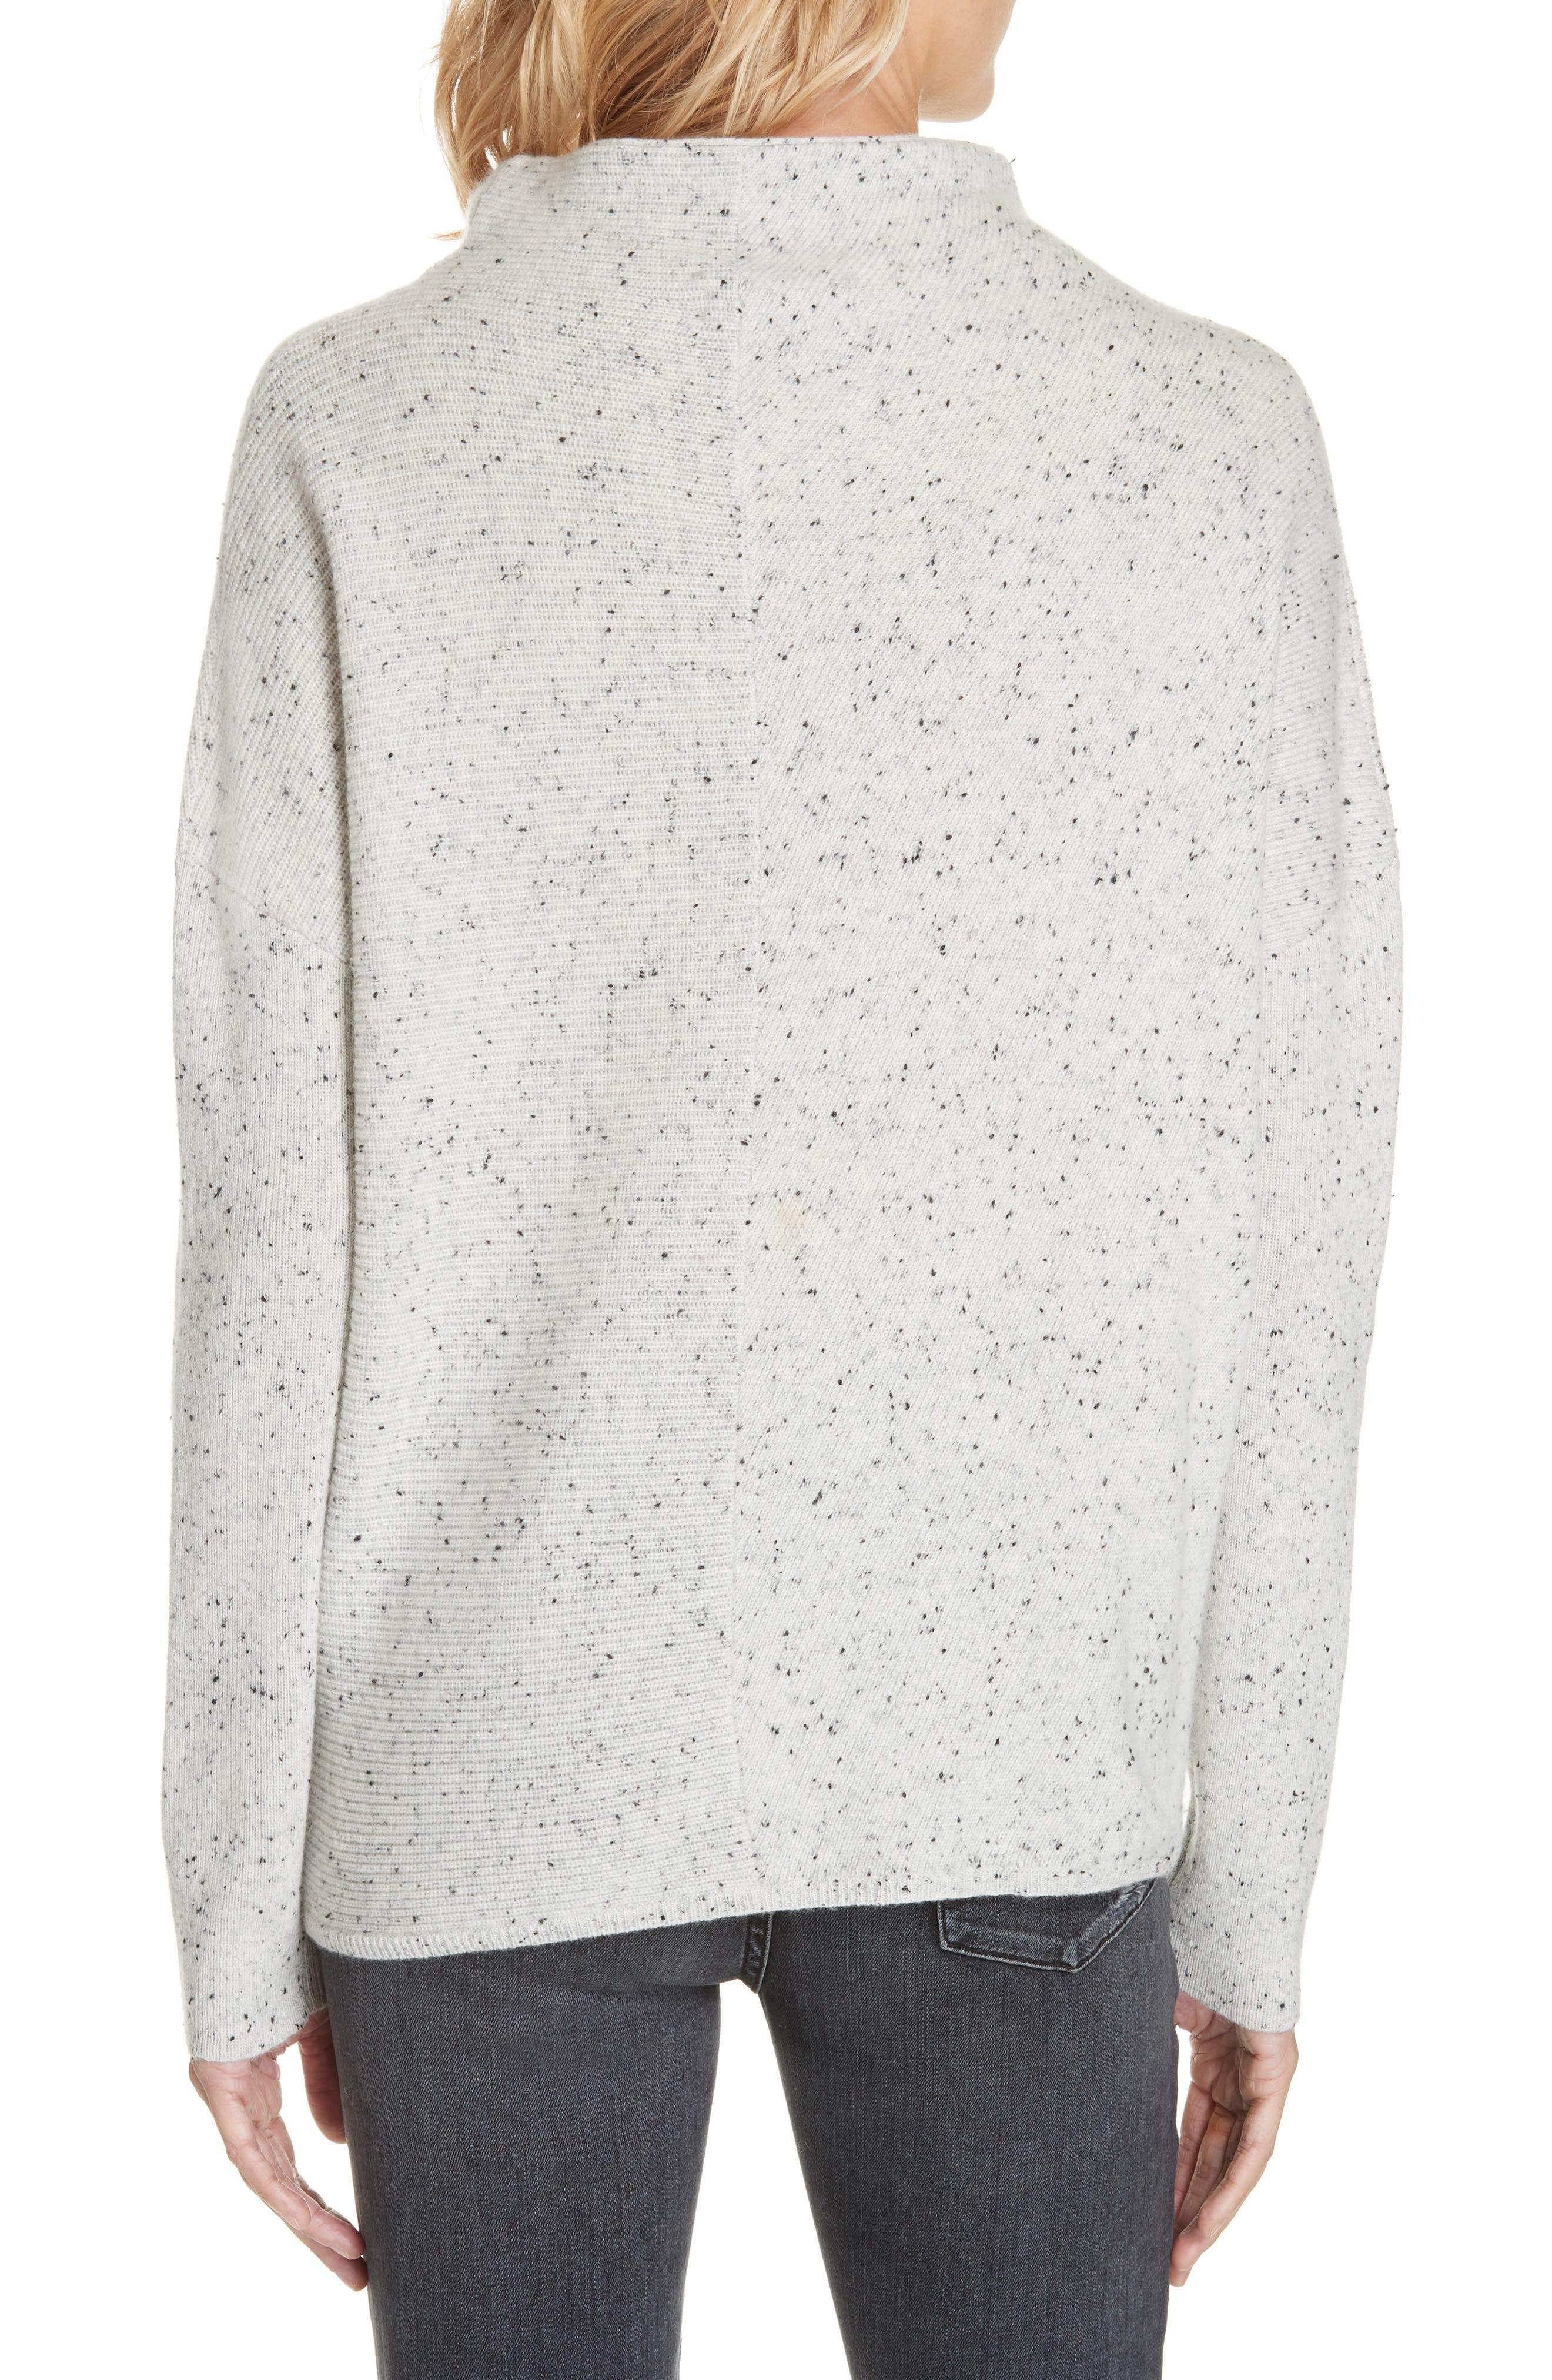 Cashmere Directional Rib Mock Neck Sweater,                             Alternate thumbnail 2, color,                             050